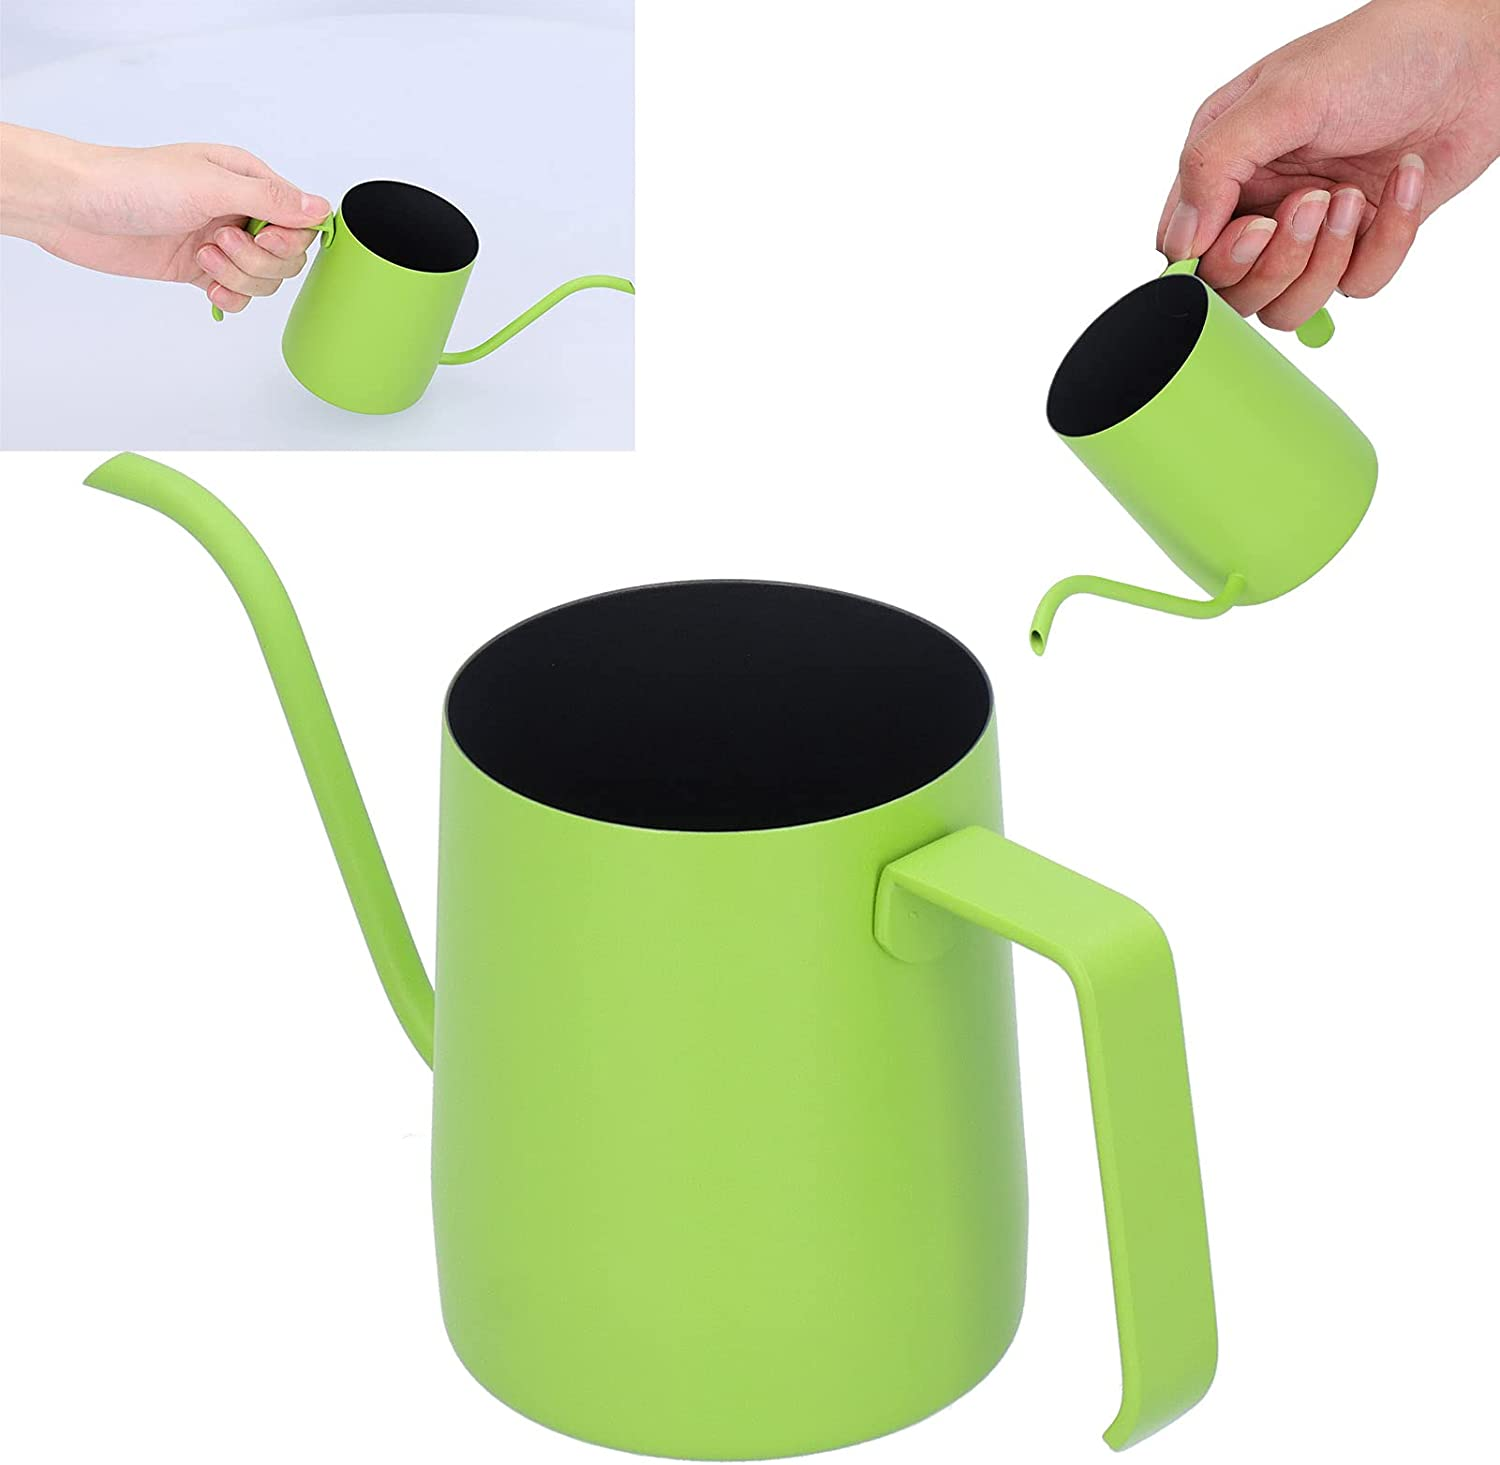 304 Stainless 55% OFF Steel Coffee Fine 4 years warranty Pot Pour Spout